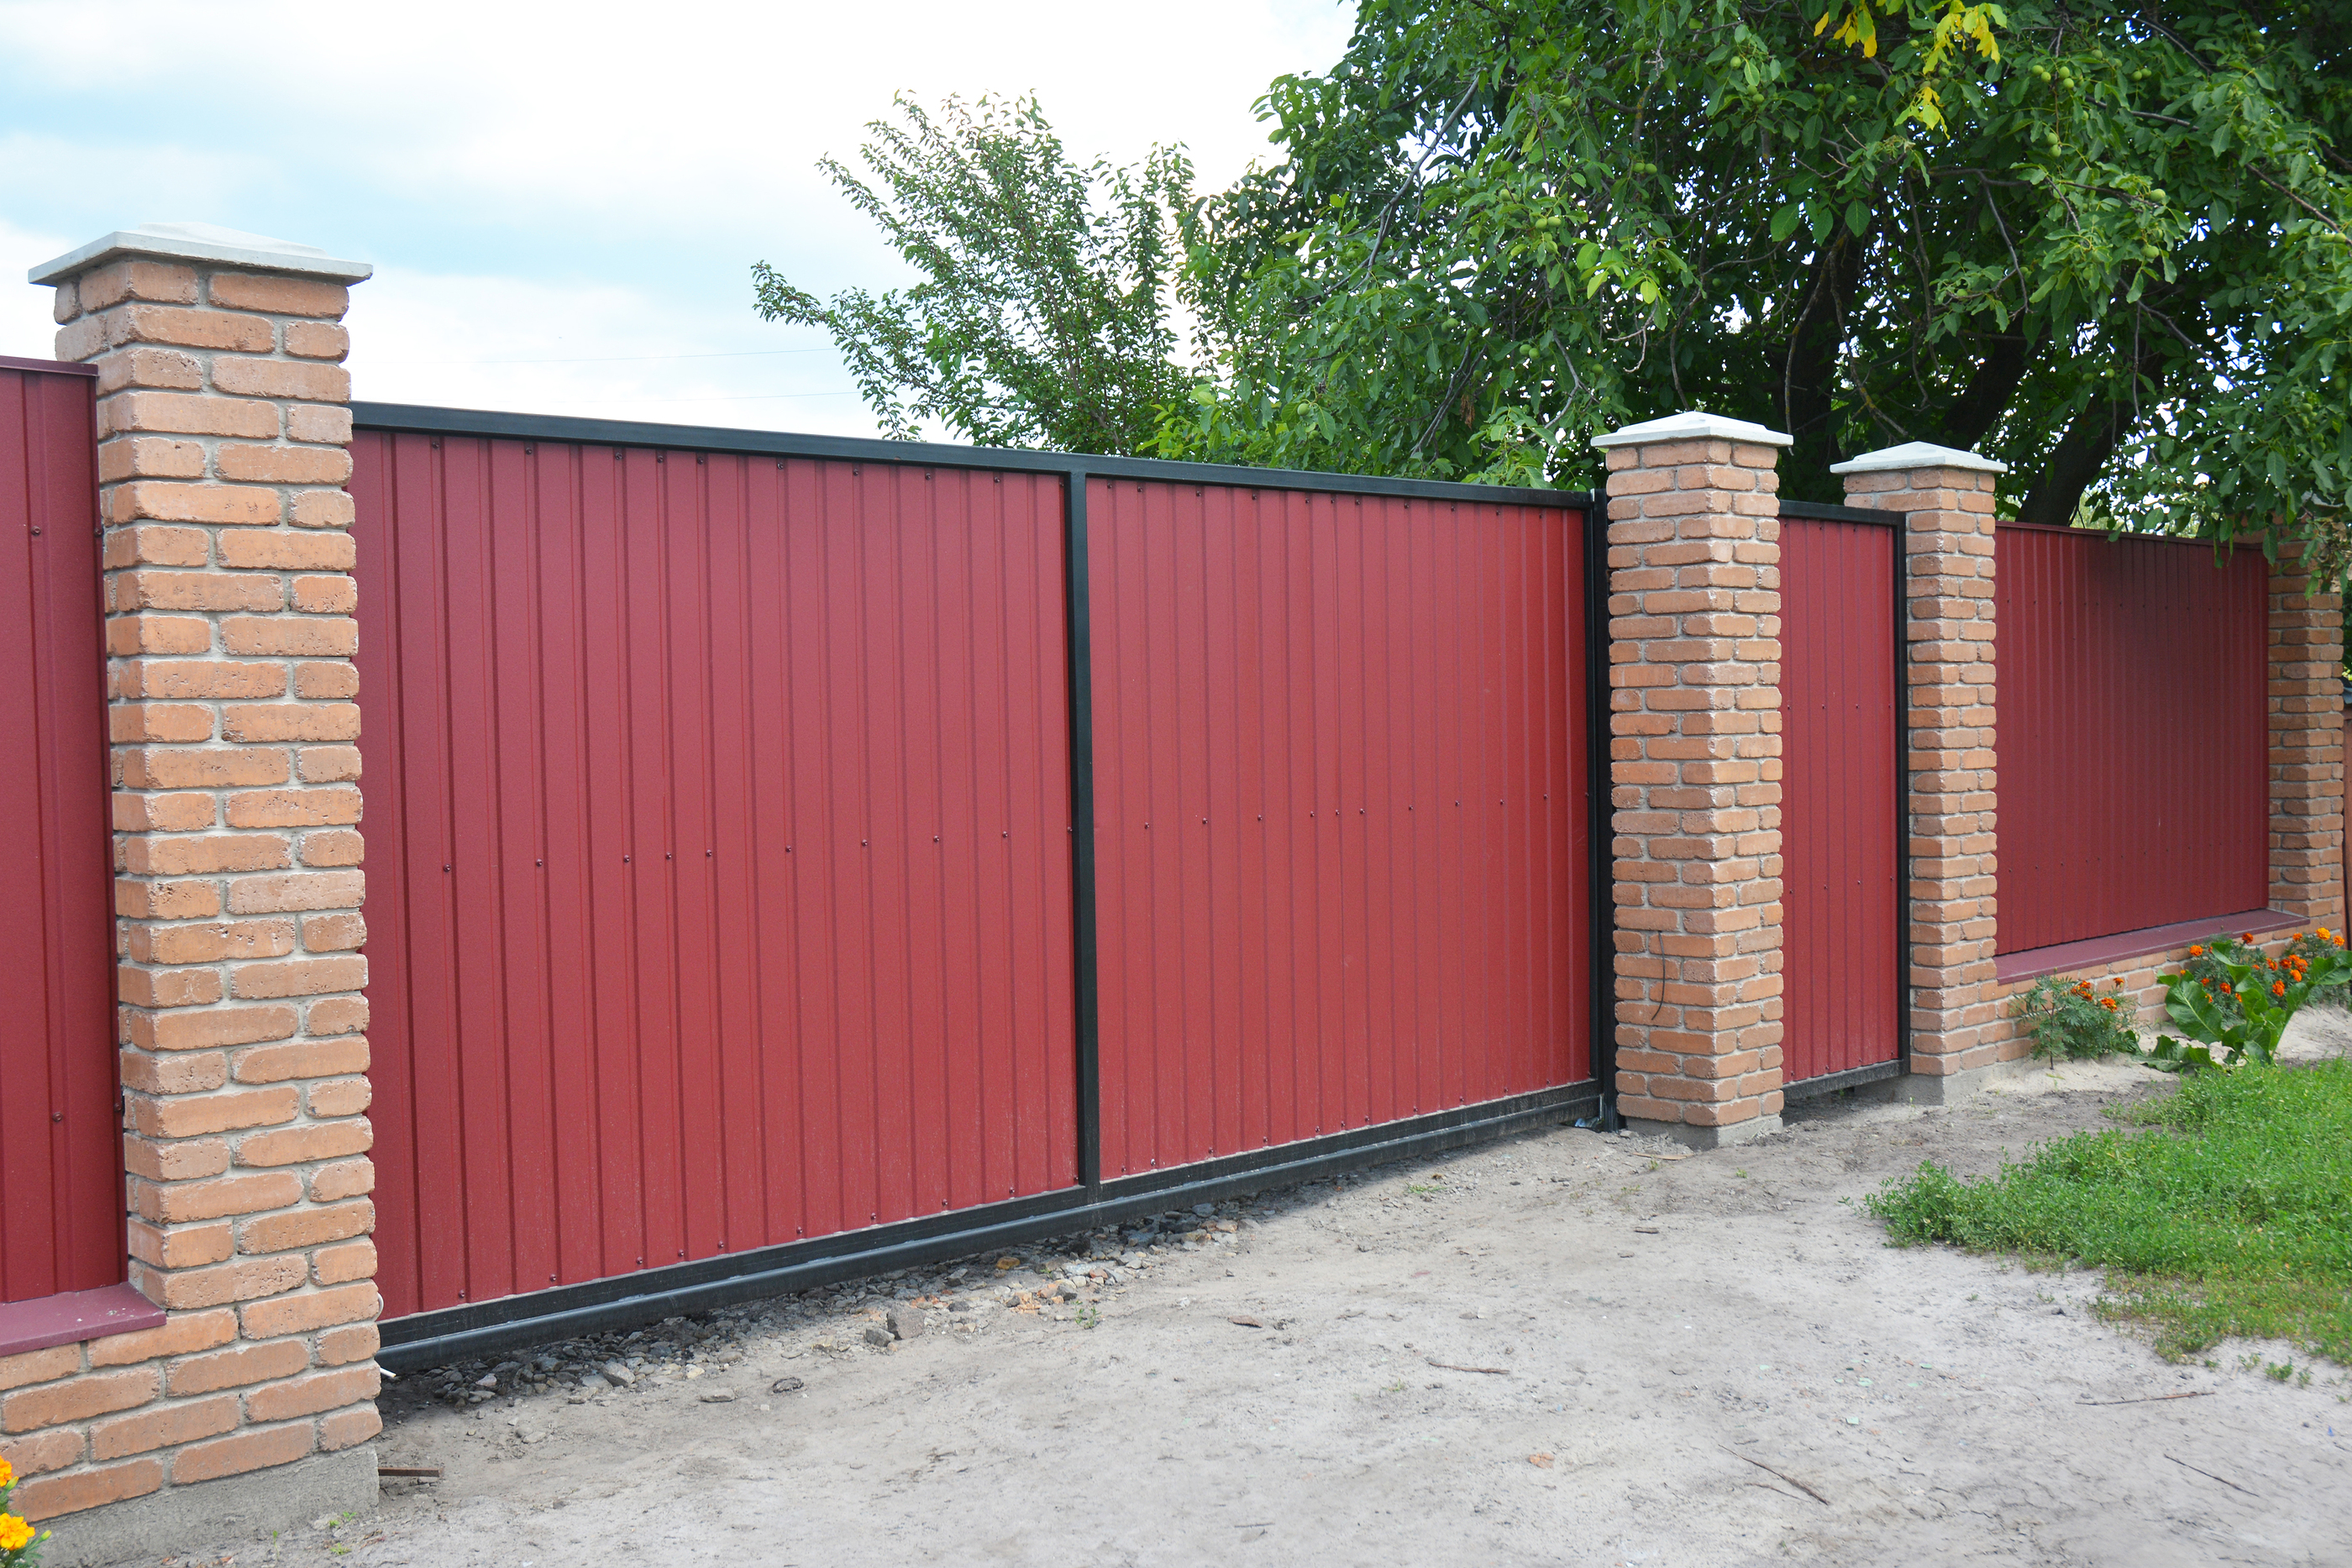 Installing Brick and Metal Fence Gate with Door. Red Metal Fencing Panels.